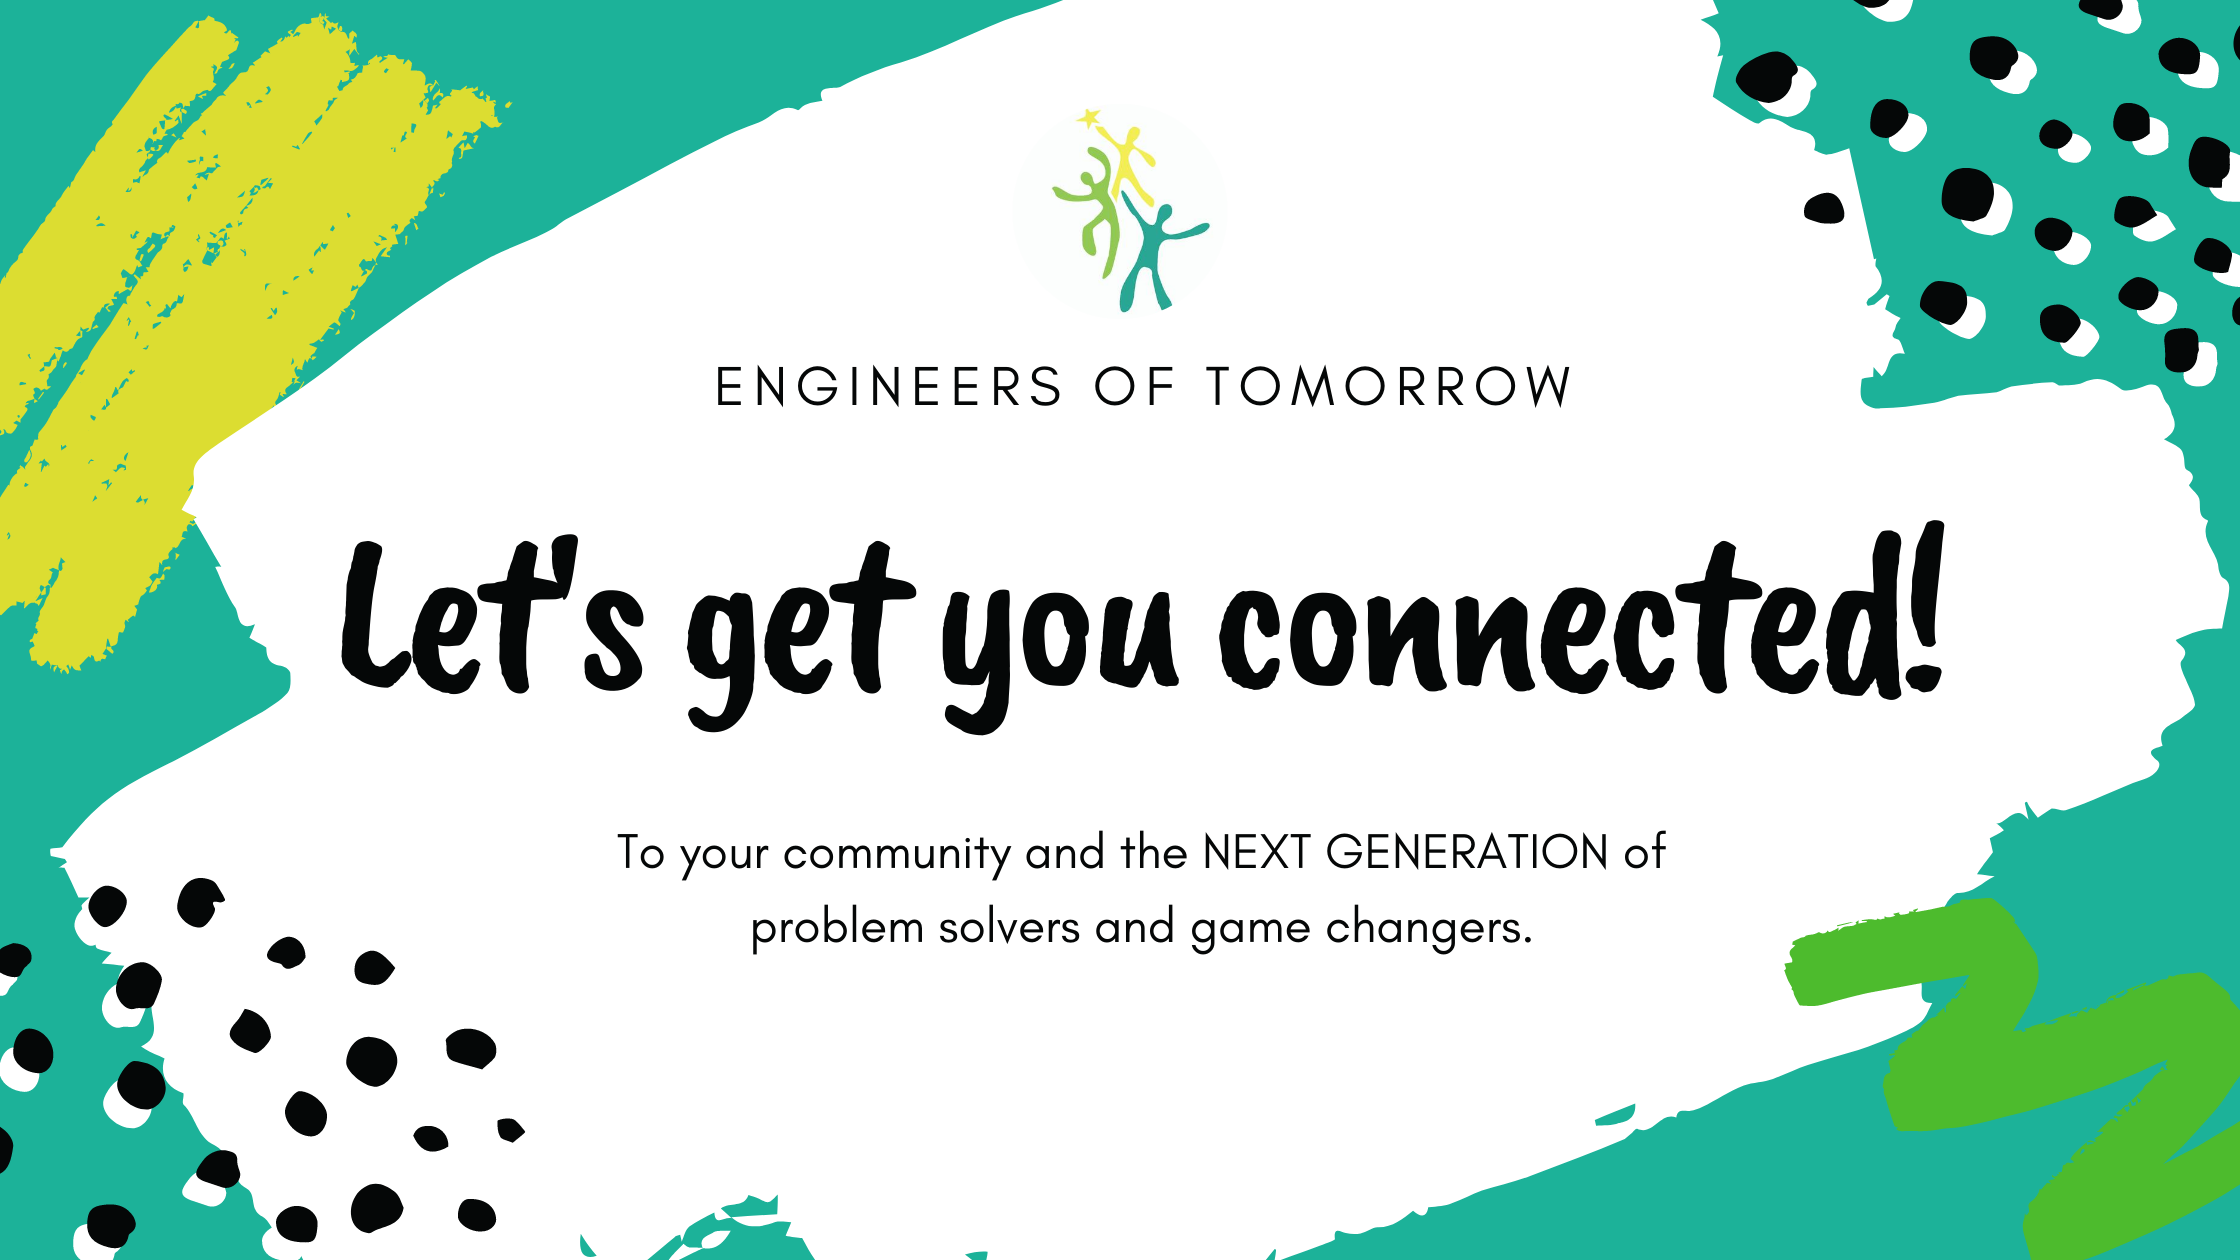 Let's get you connected to the next generation of problem solvers and game changers!